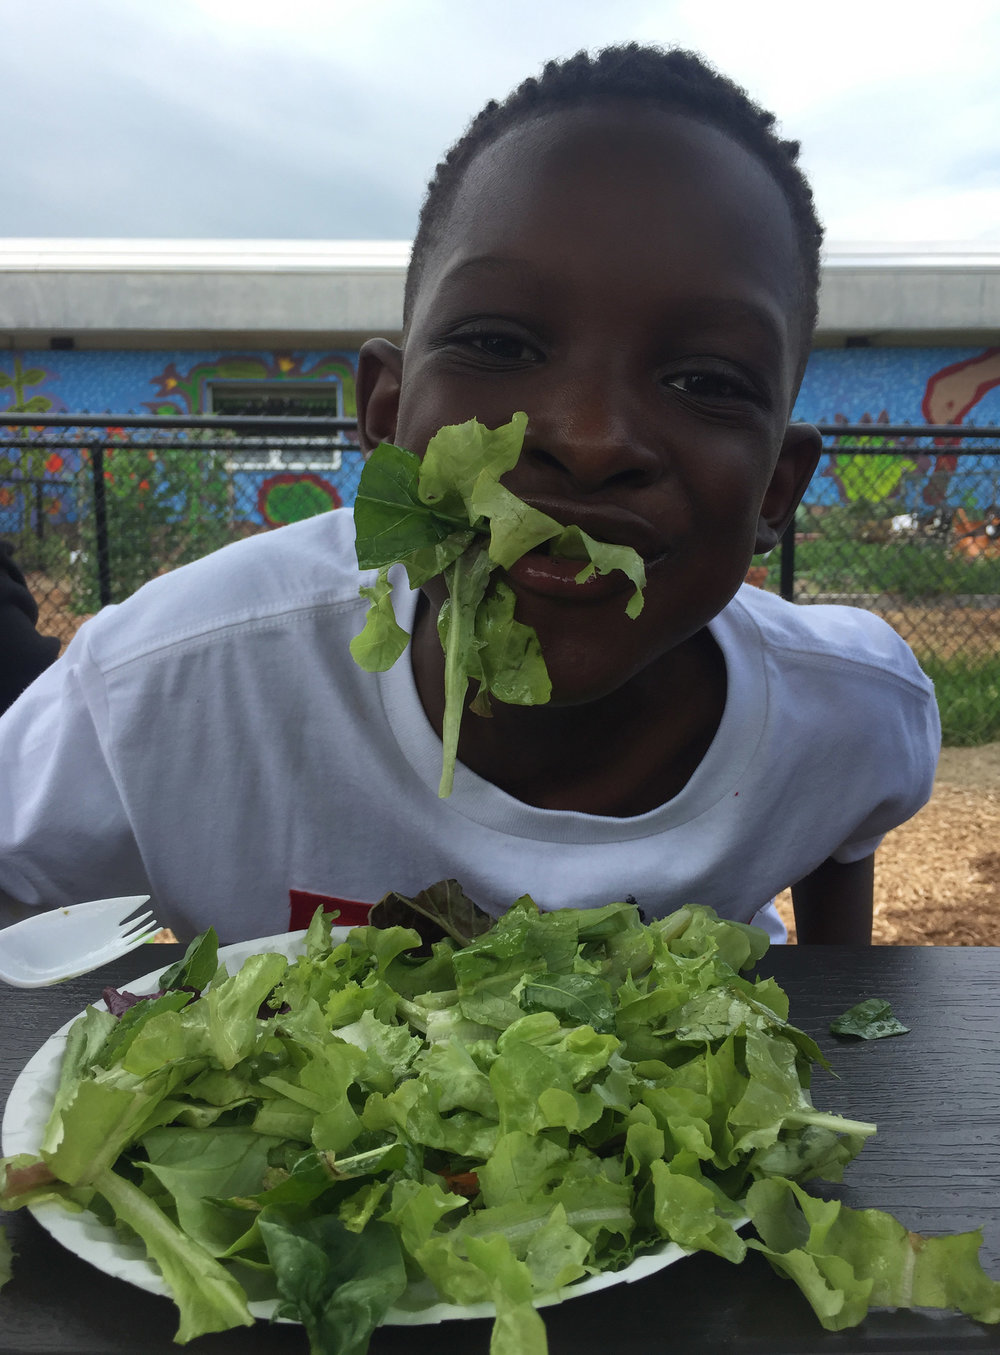 Salad crazy! - This student at Temple Hill Academy in Newburgh gleefully ate up all the salad leftovers - He just couldn't get enough of the great greens!